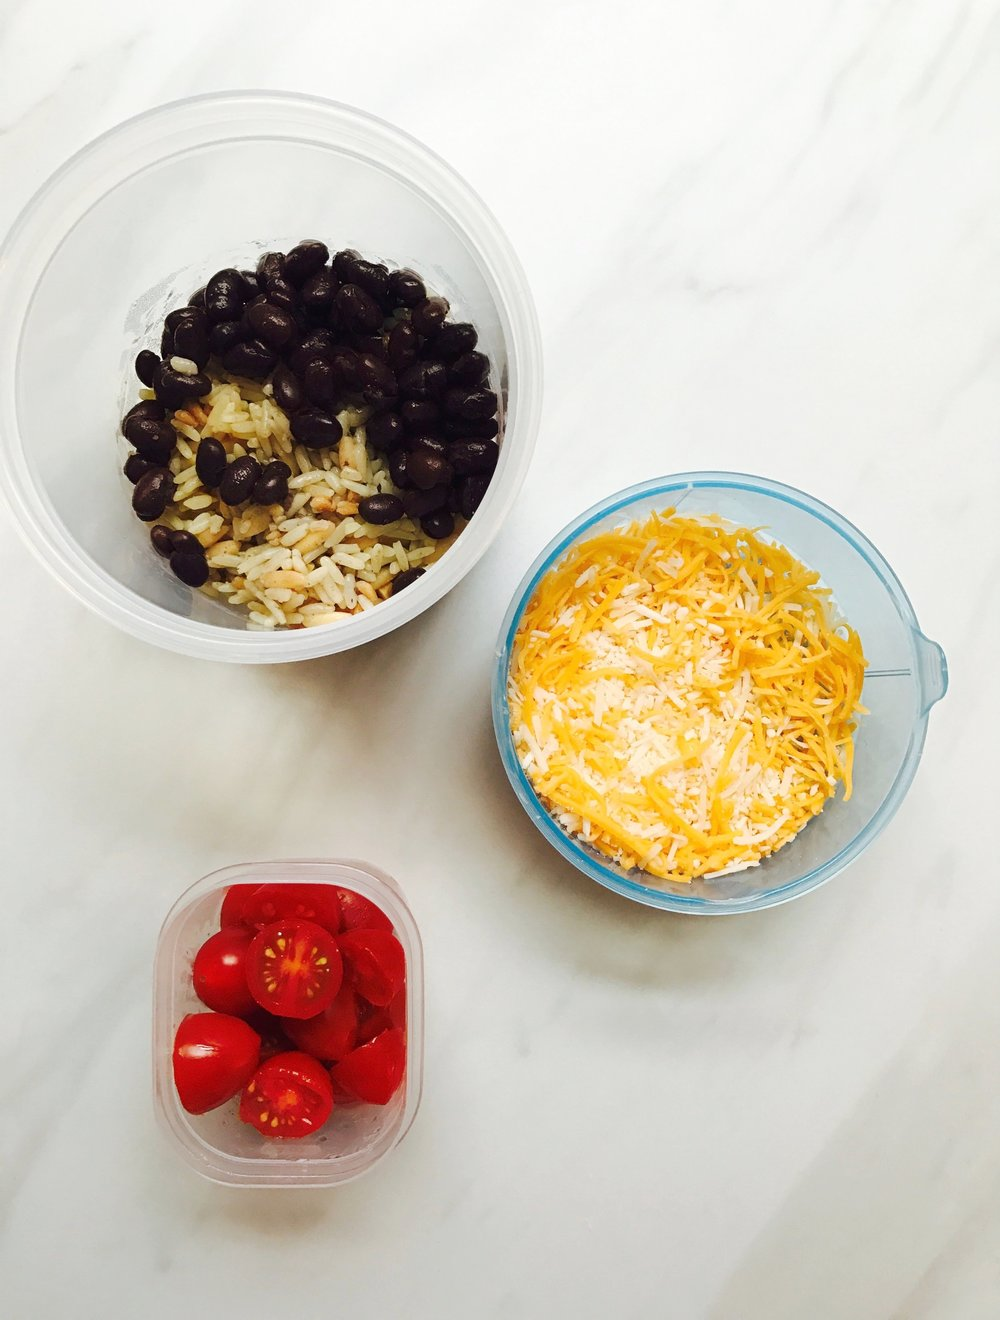 Black bean salad - black beans, rice, shredded cheese, and tomatoes. These are usually leftovers from dinner the night before so it's easy for me to pack.